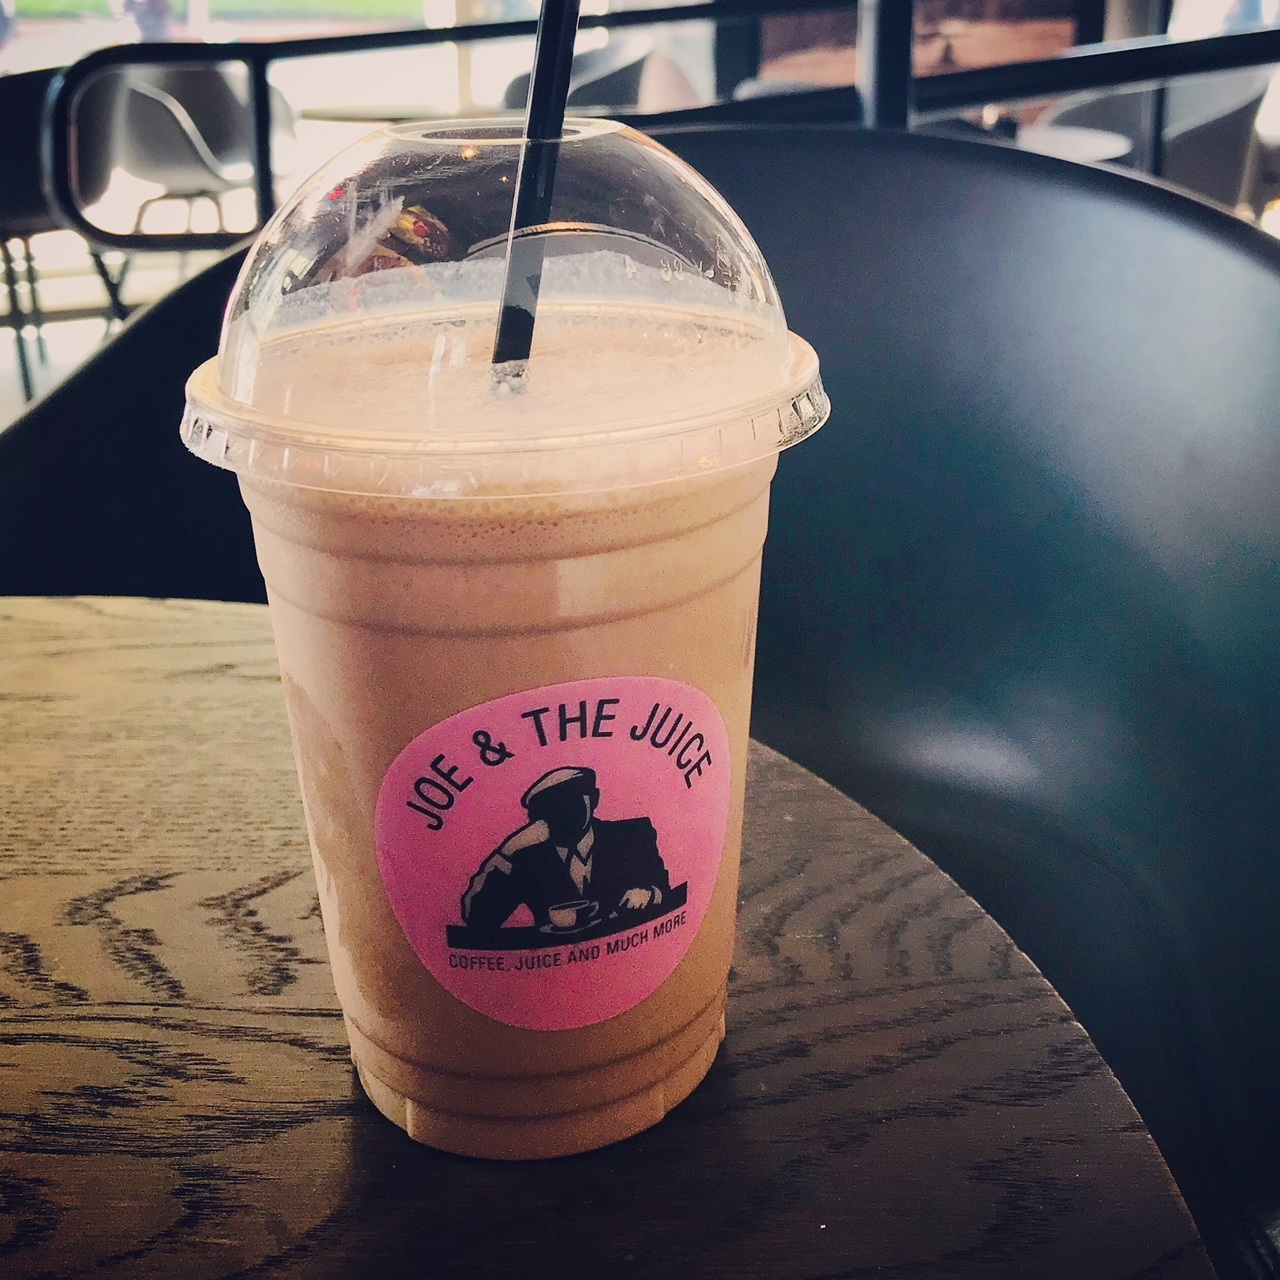 Get away from the hustle and bustle of the convention crowd and relax a little at Joe and the Juice.